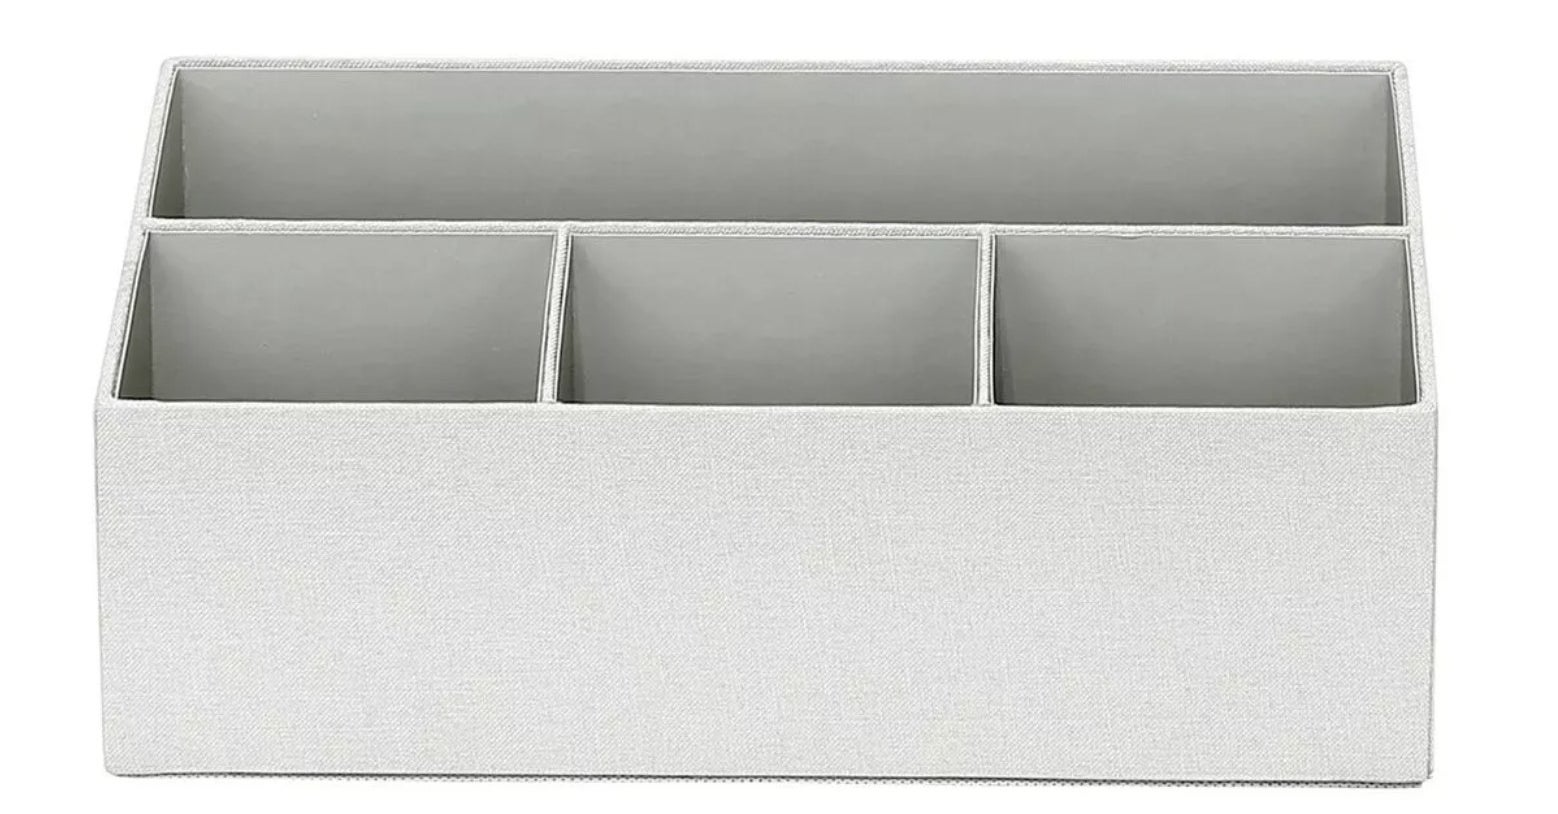 The grey fabric desk organizer with four compartments